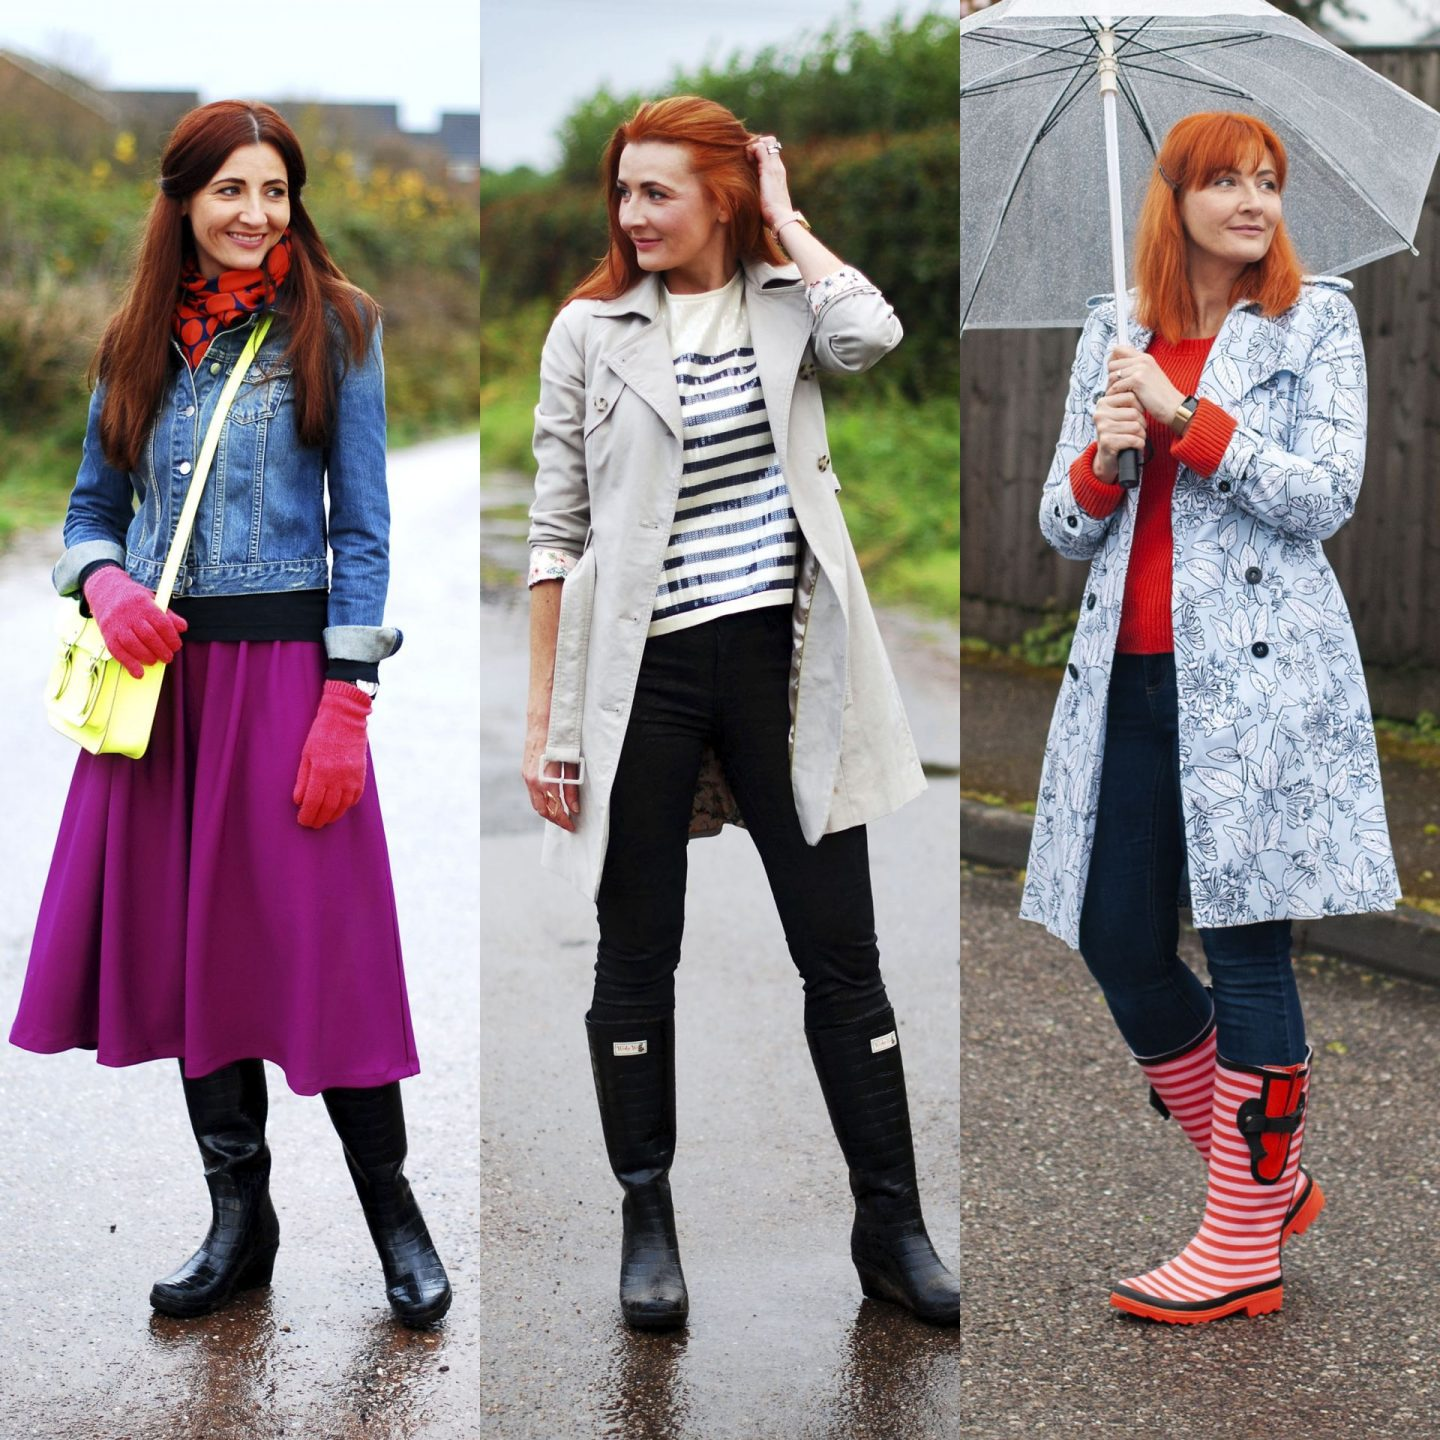 7 Colourful and Classic Rainy Day Outfits From the Archives | Not Dressed As Lamb